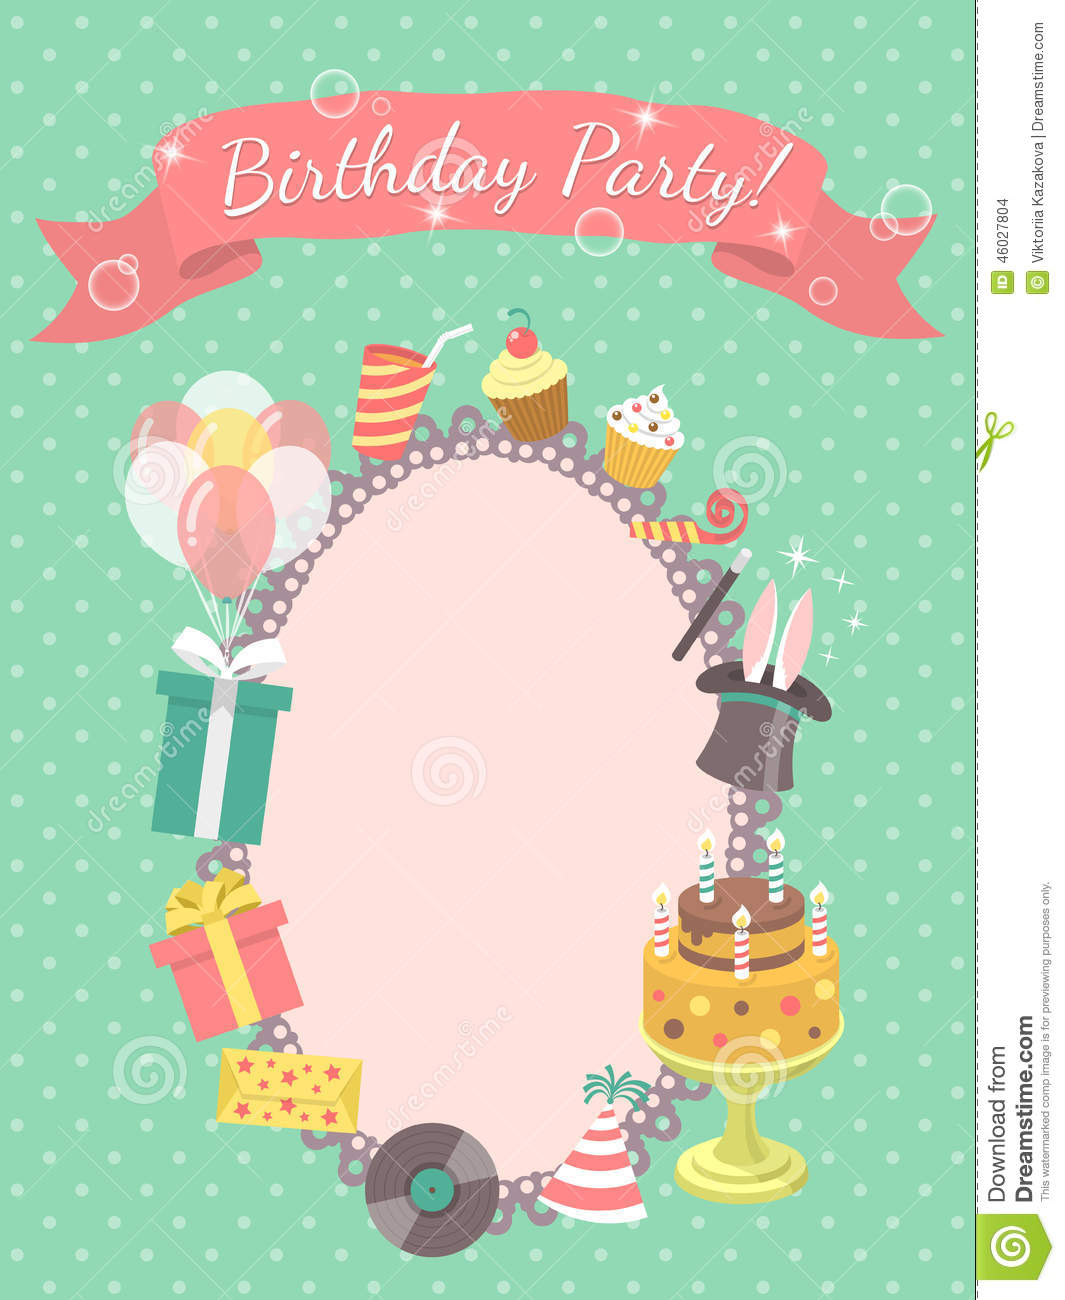 Birthday Party Invitation Card Vector Image 46027804 – Birthday Party Invitation Cards